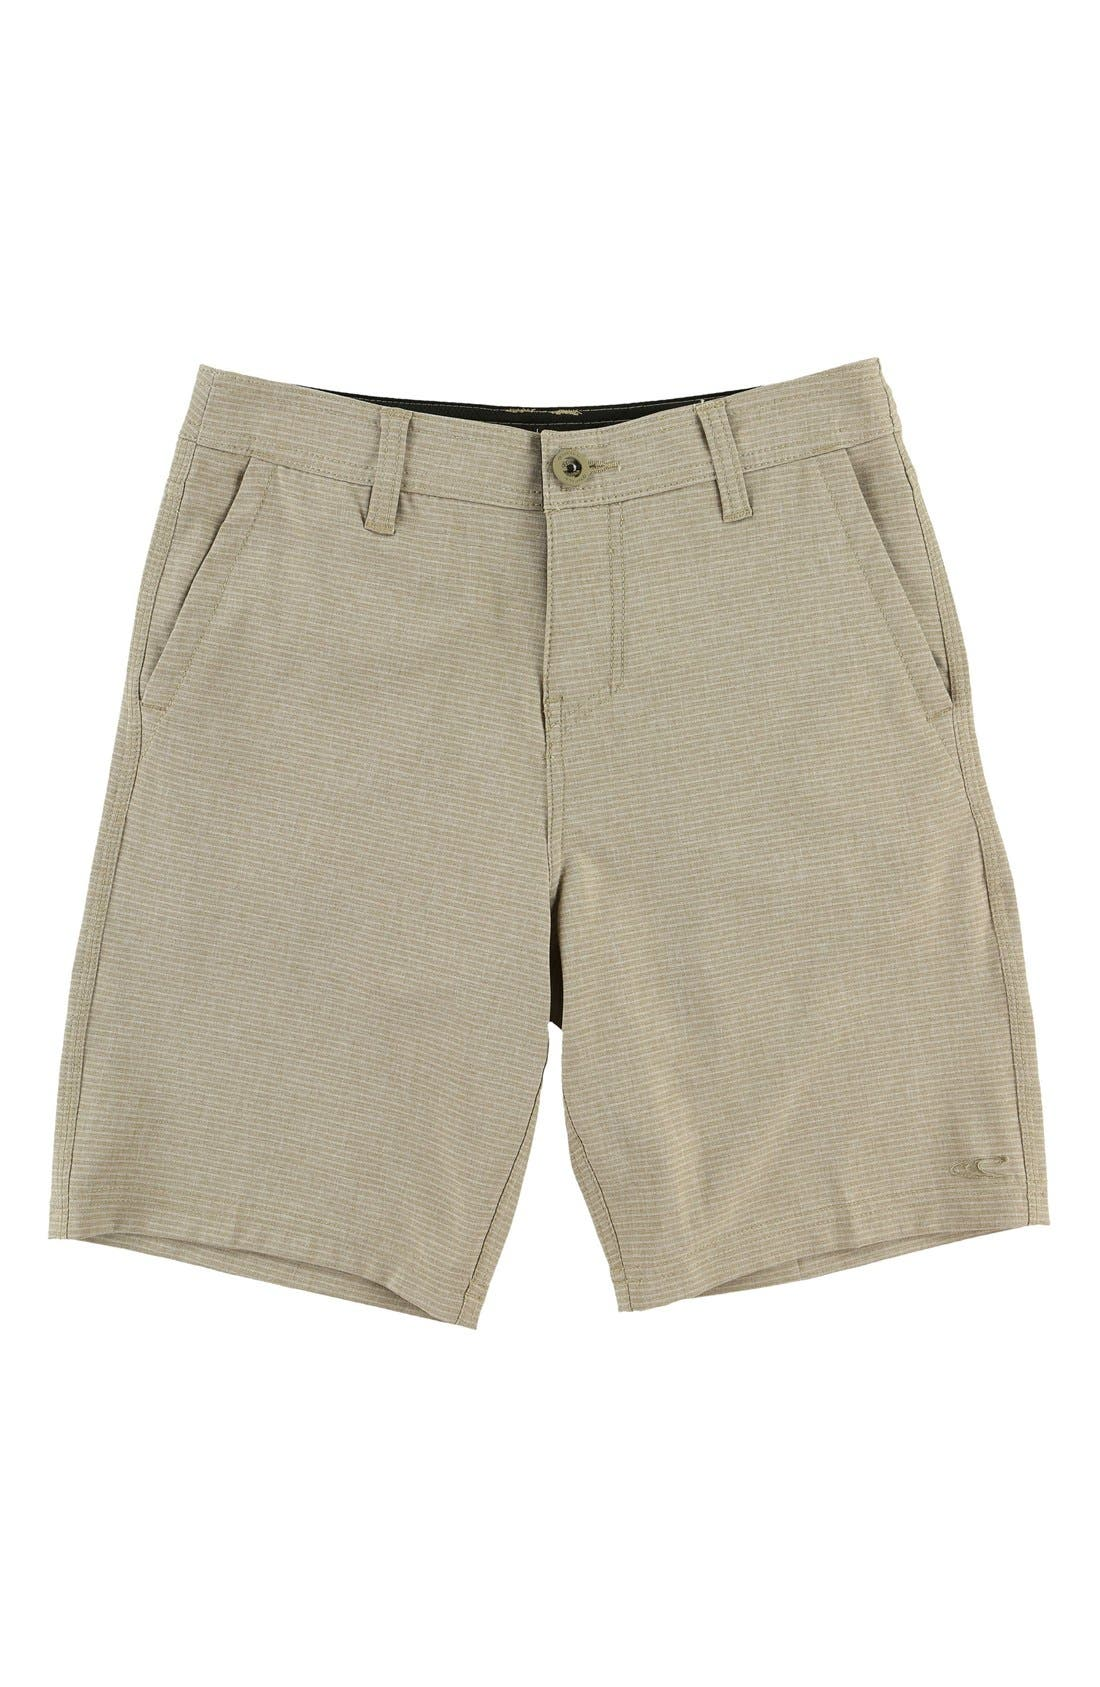 Alternate Image 1 Selected - O'Neill Locked Stripe Hybrid Board Shorts (Big Boys)